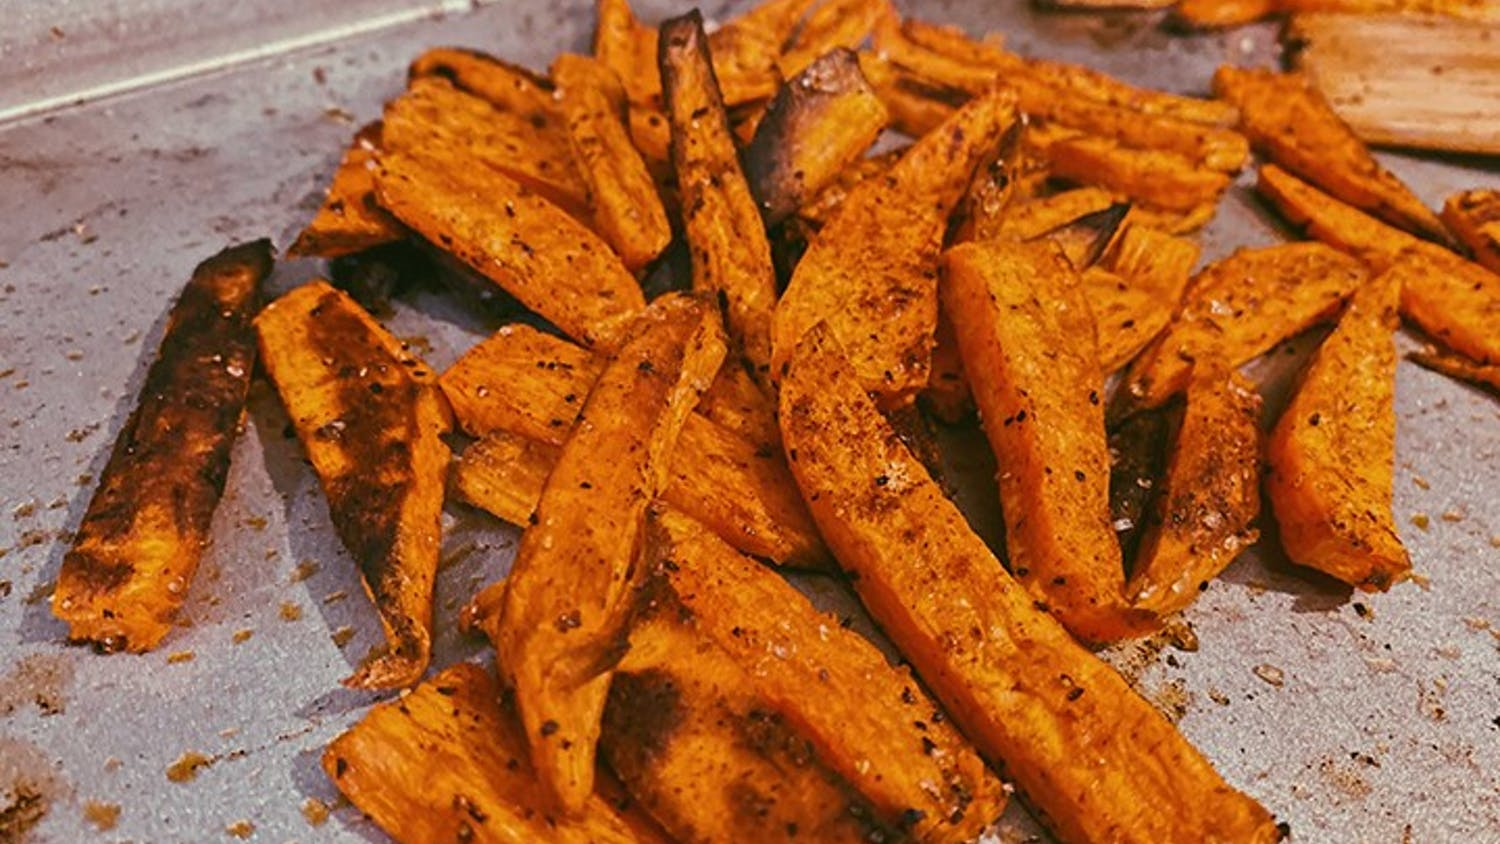 Garlic sweet potato fries are a healthy and easy alternative to regular fries.